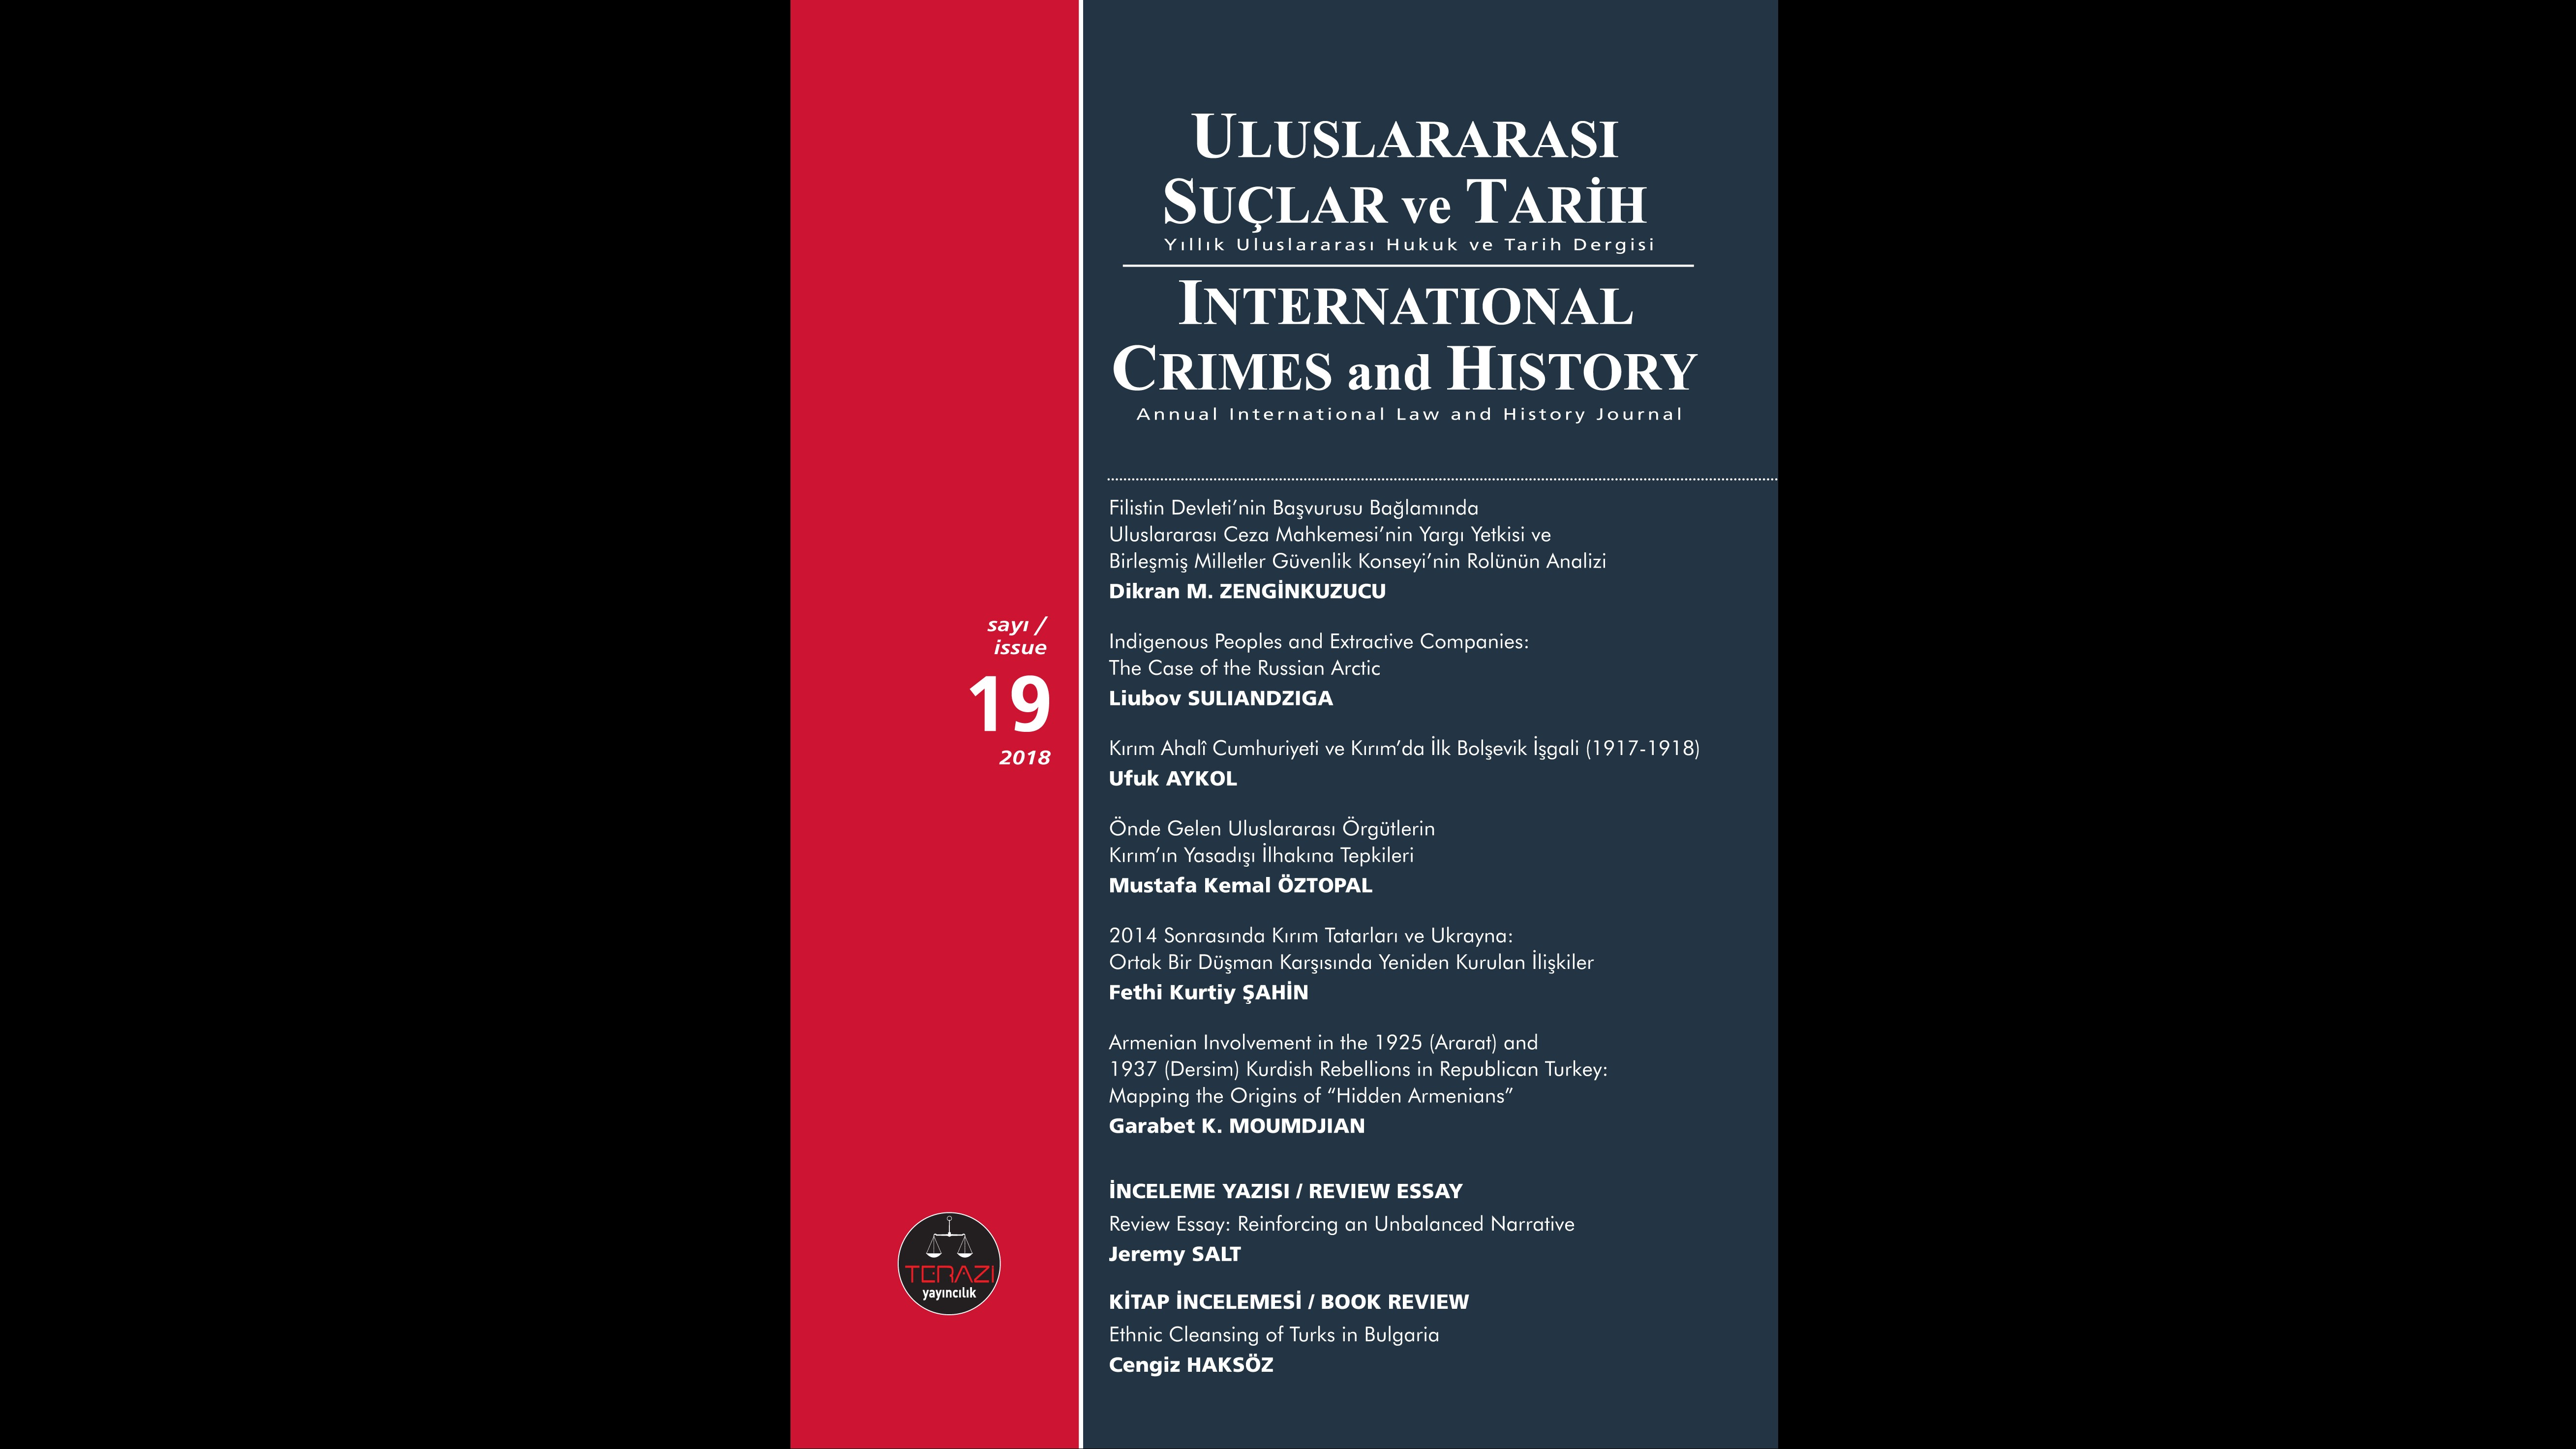 ANNOUNCEMENT: THE 19th ISSUE OF ULUSLARARASI SUÇLAR VE TARİH / INTERNATIONAL CRIMES AND HISTORY HAS BEEN PUBLISHED